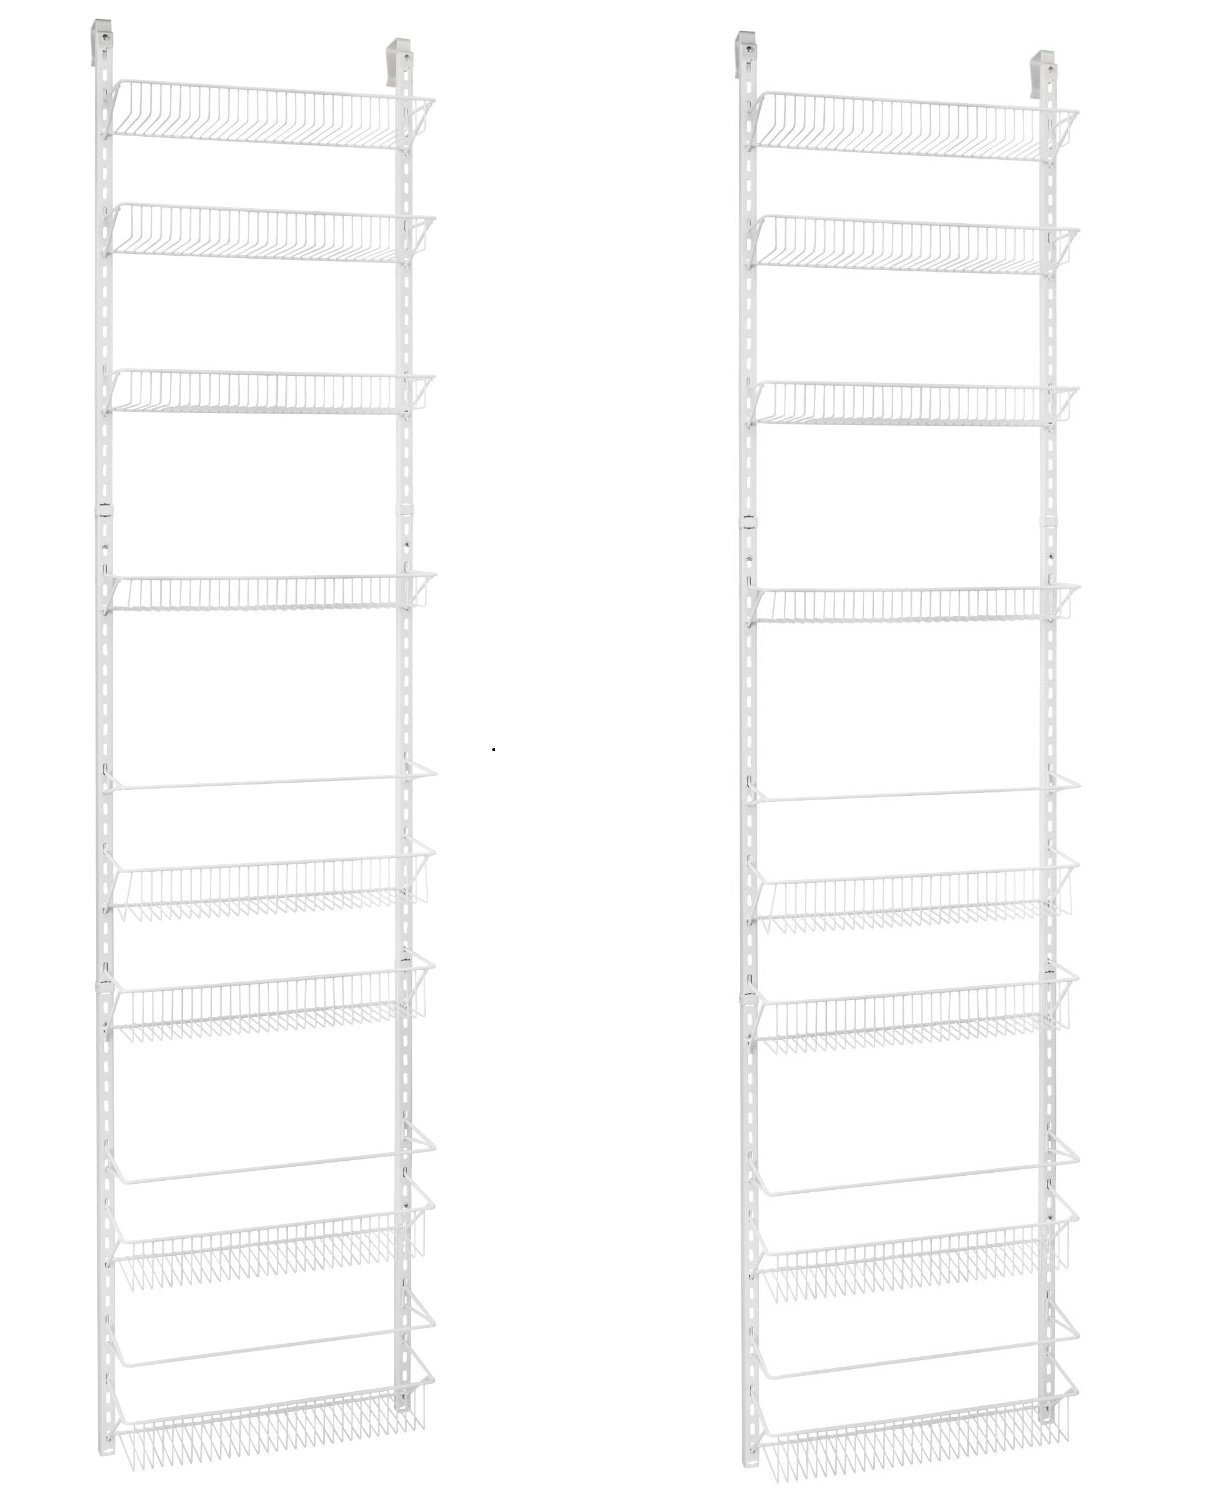 ClosetMaid 1233 Adjustable 8-Tier Wall and Door